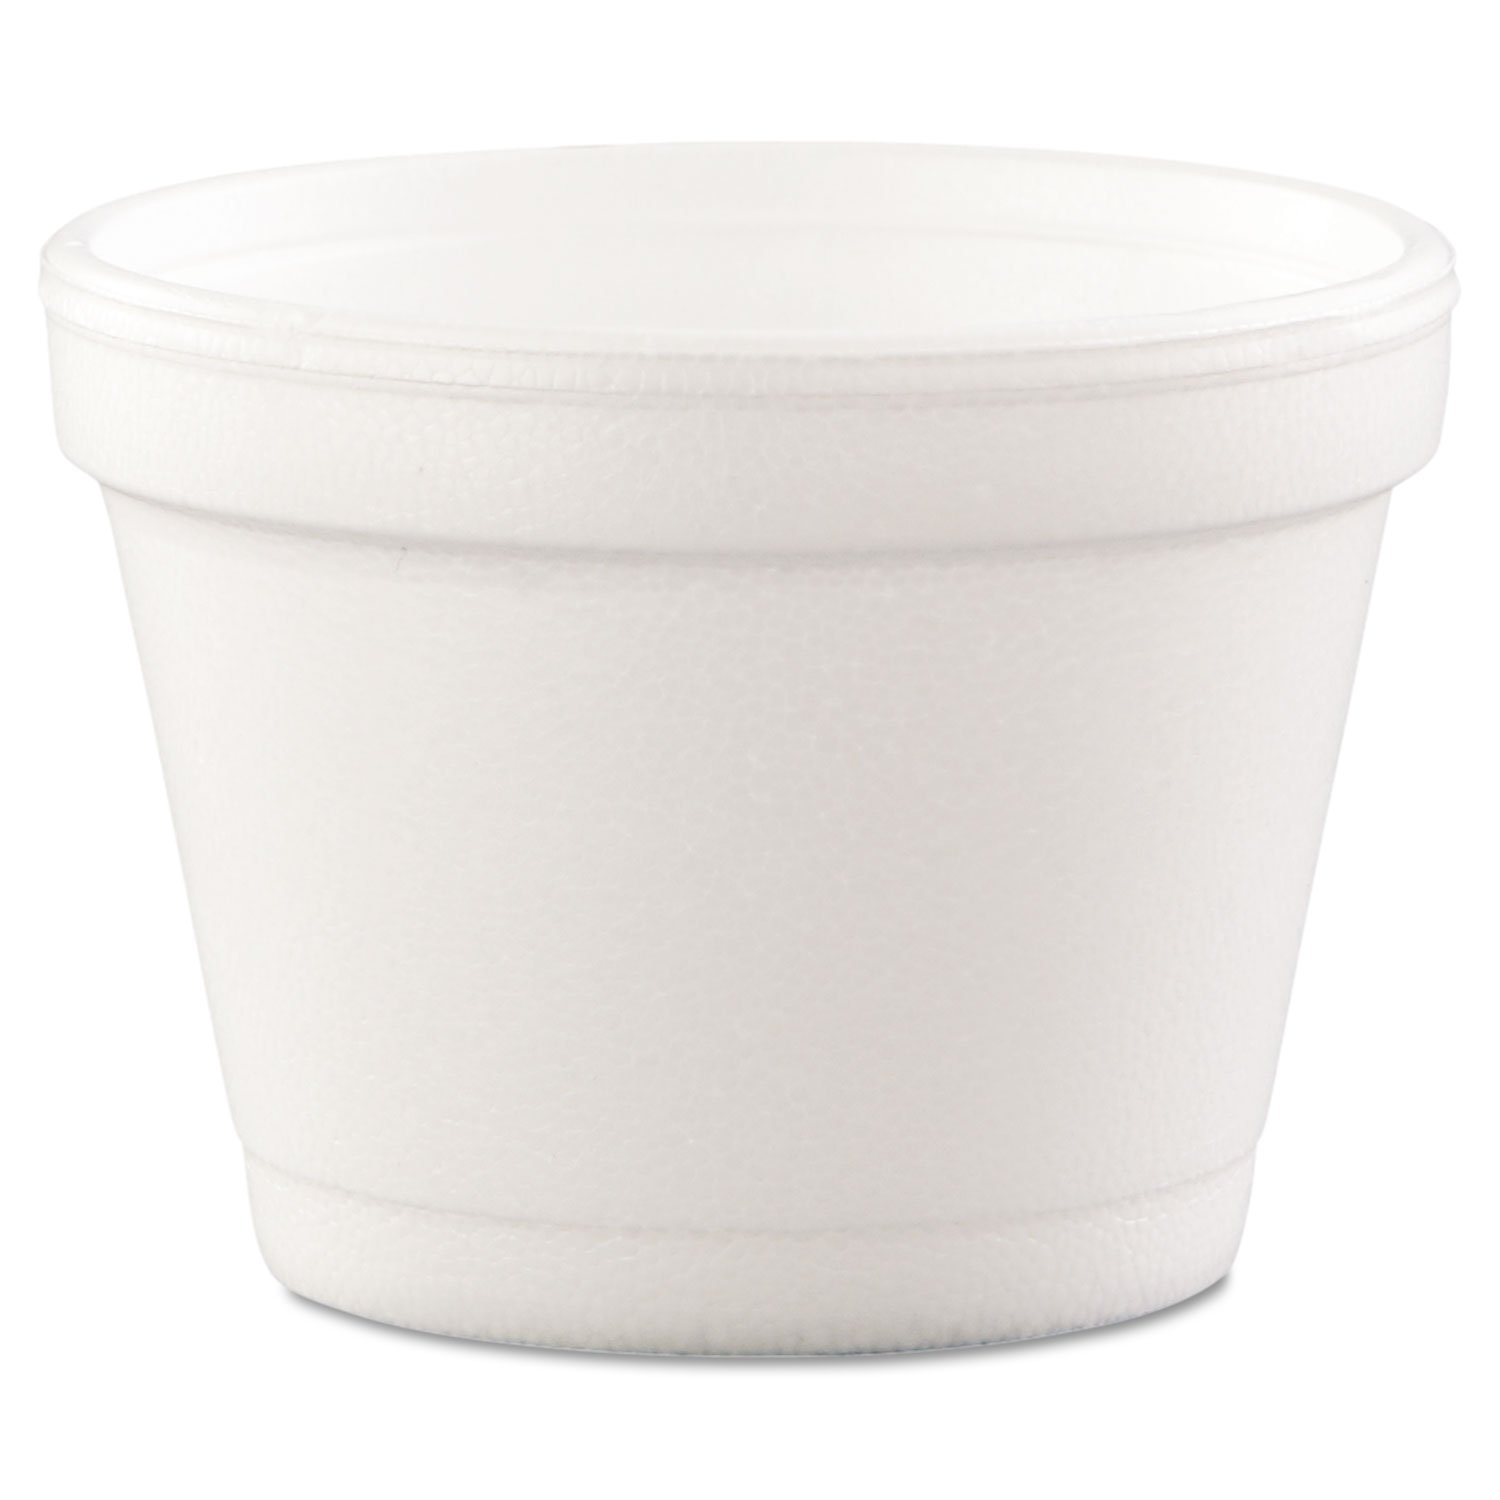 Dart 4J6 Bowl Containers, Foam, 4oz, White (Case of 1000) by DART